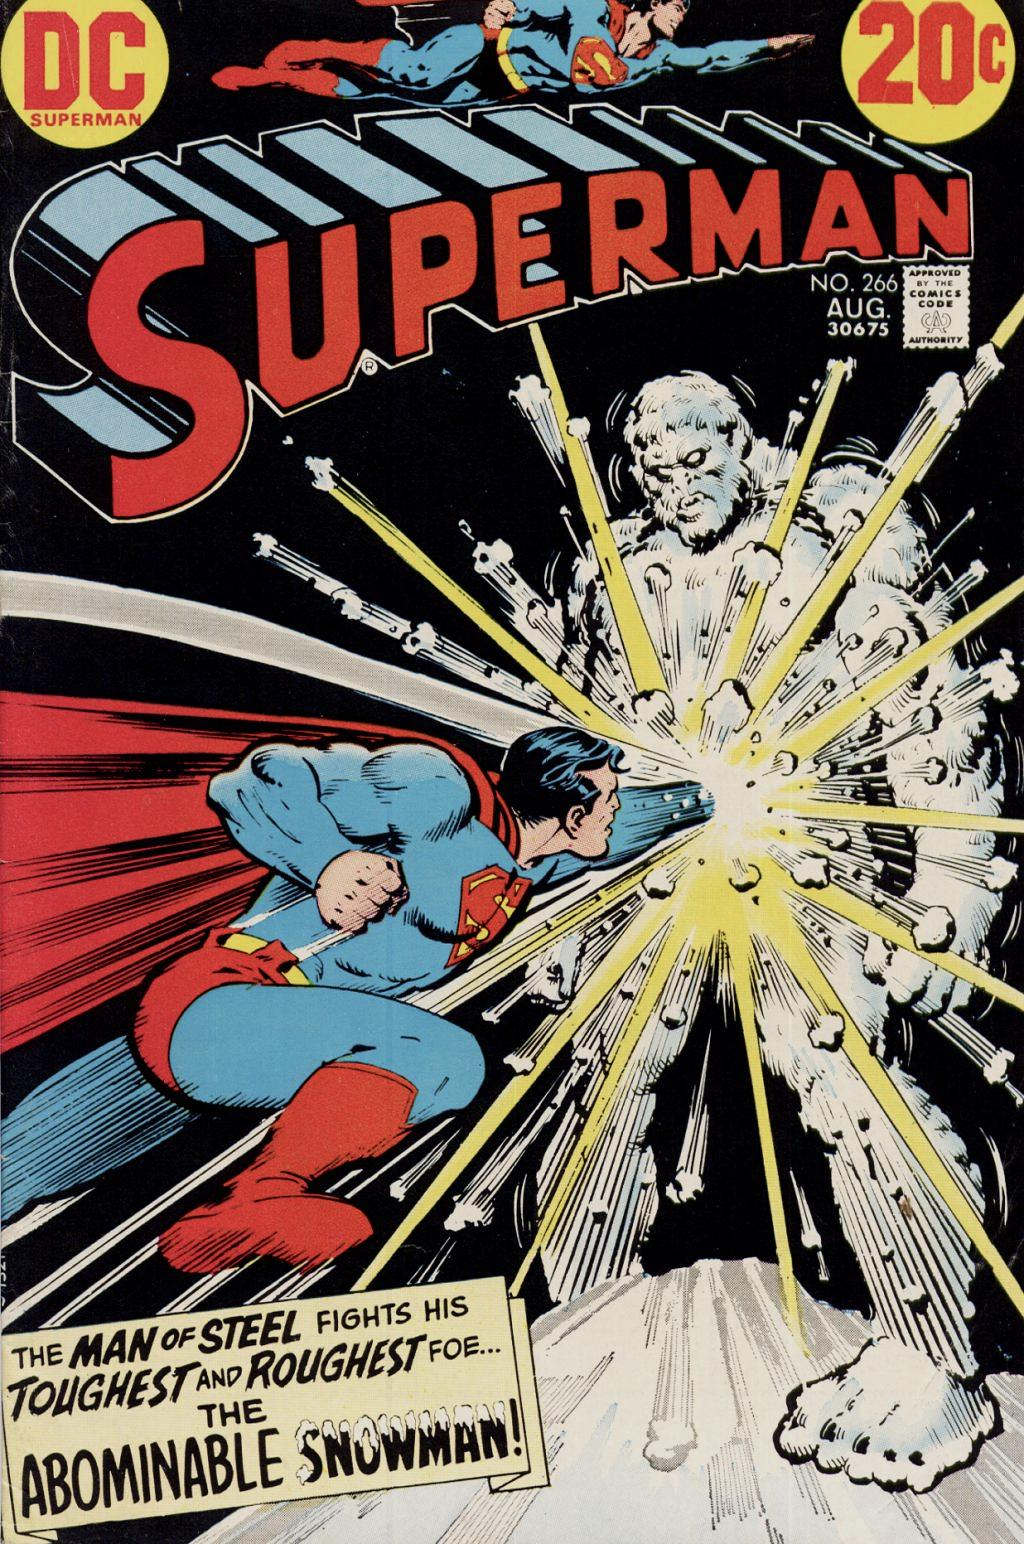 Superman throwing a mighty punch at stomach of unmoving Abominable Snowman